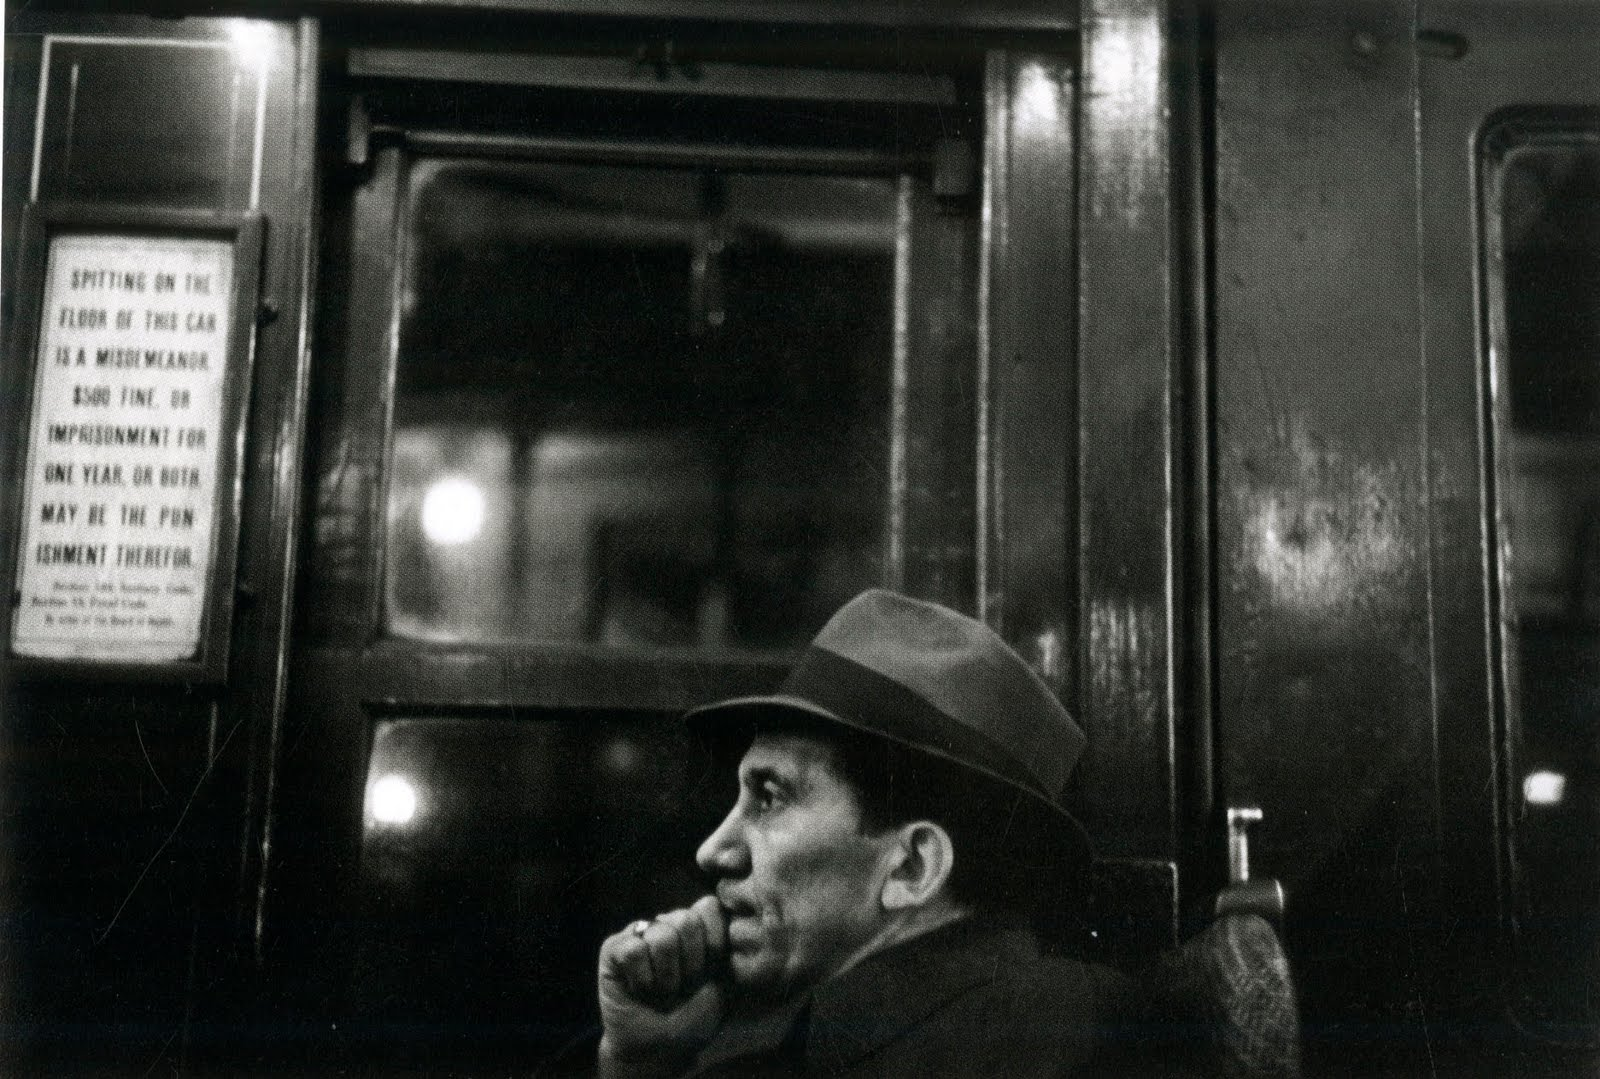 walker evans photography essay essay 2 to be nostalgic is to be sentimental to be interested in what you see that is passing out of history, even if it's a trolley car you've found, that's not an act of nostalgia, says walker evans1 throughout his photographic career walker evans was just that, interested in the history that he lived through.